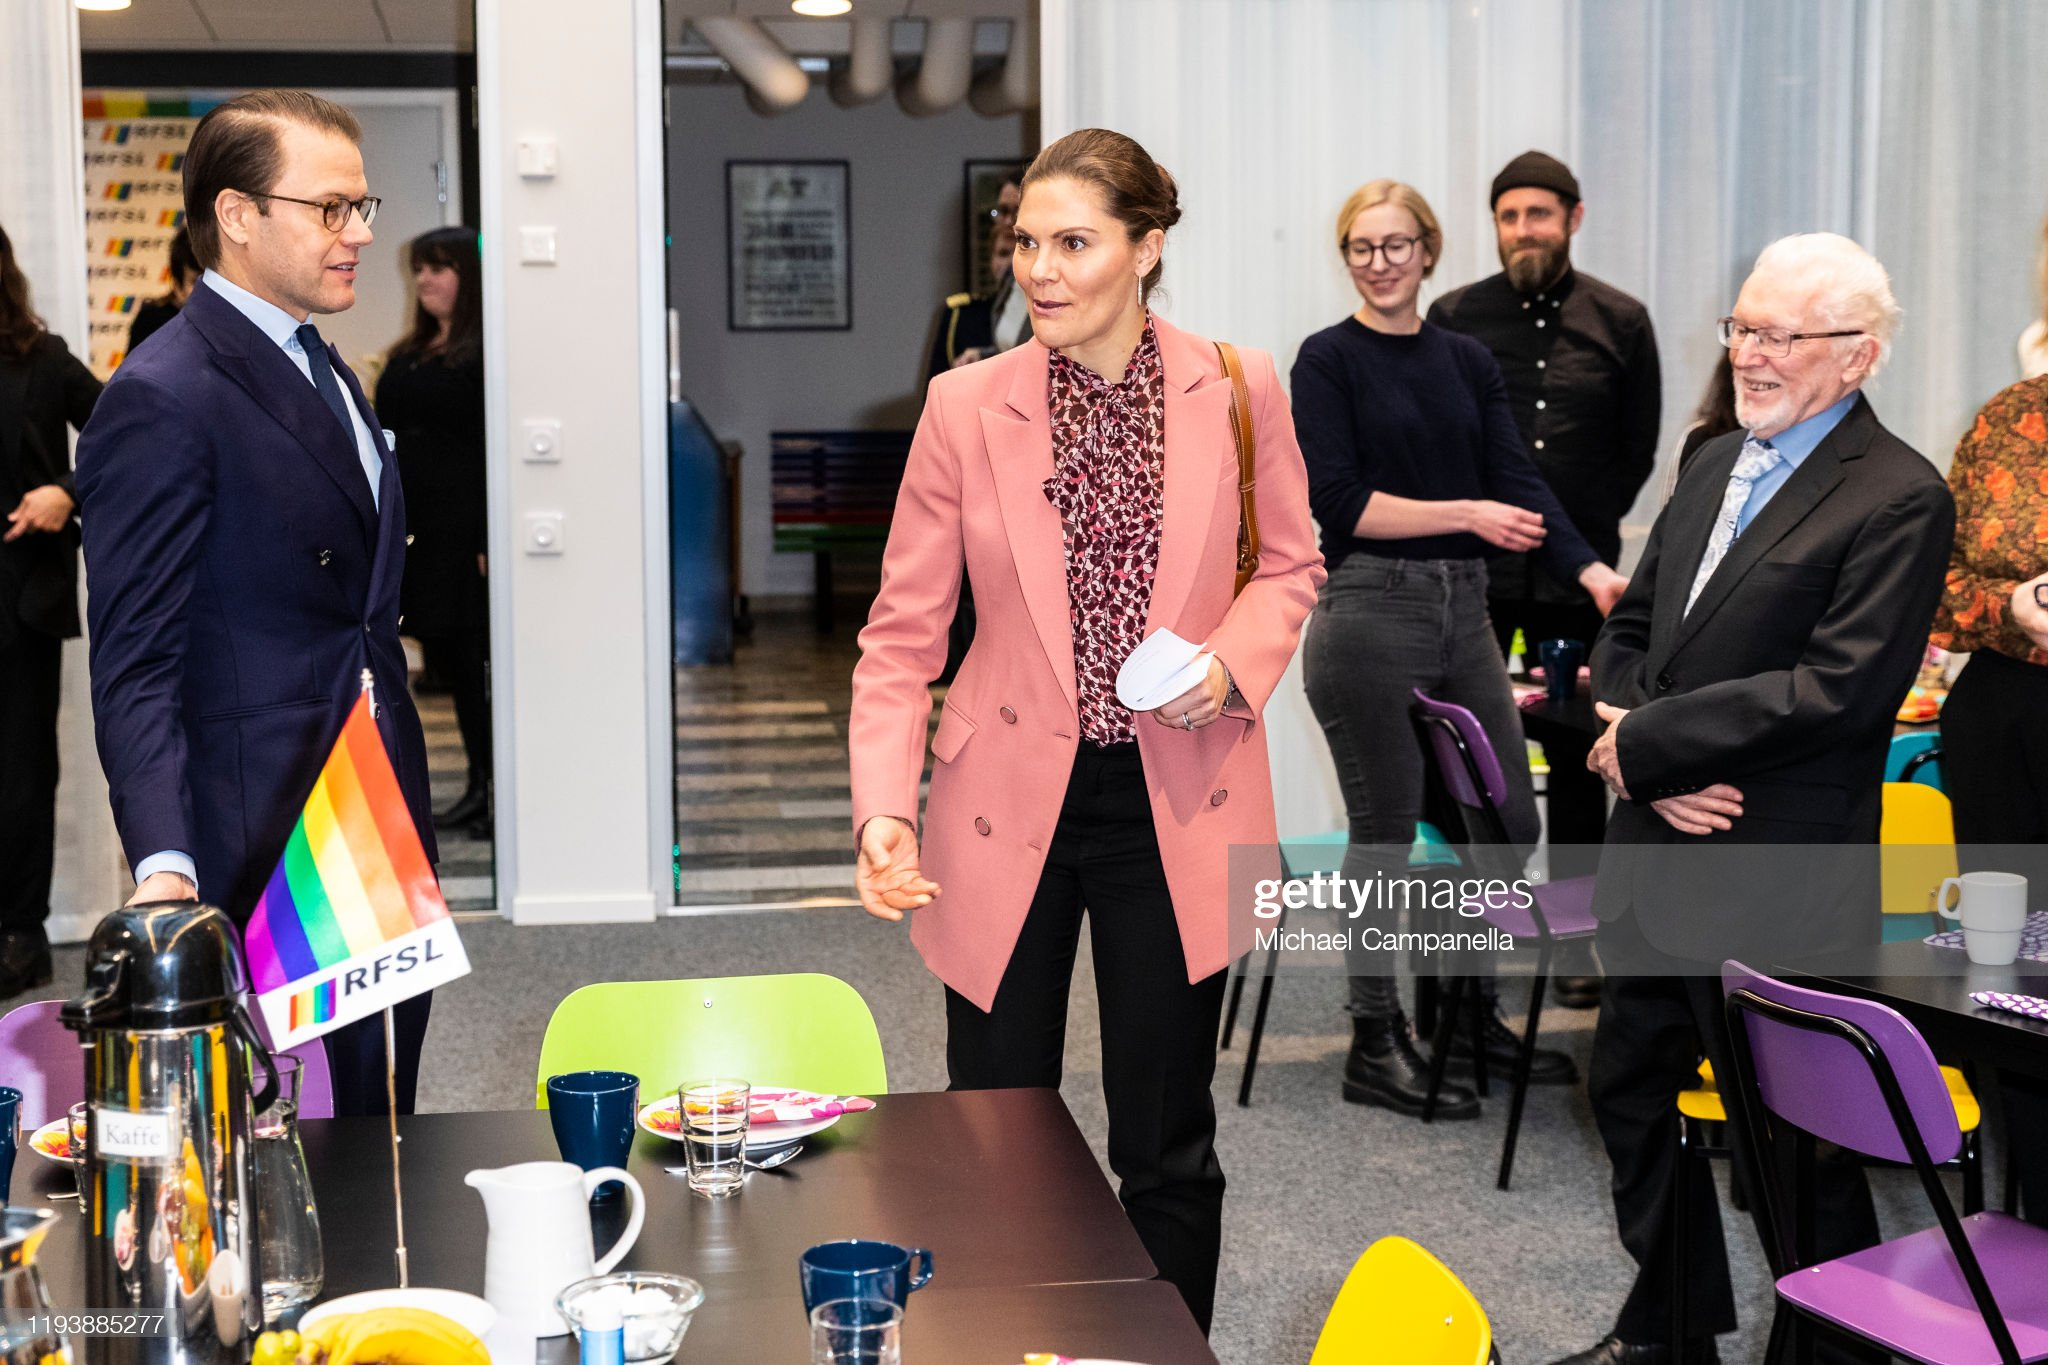 crown-princess-victoria-of-sweden-and-prince-daniel-of-sweden-visit-picture-id1193885277